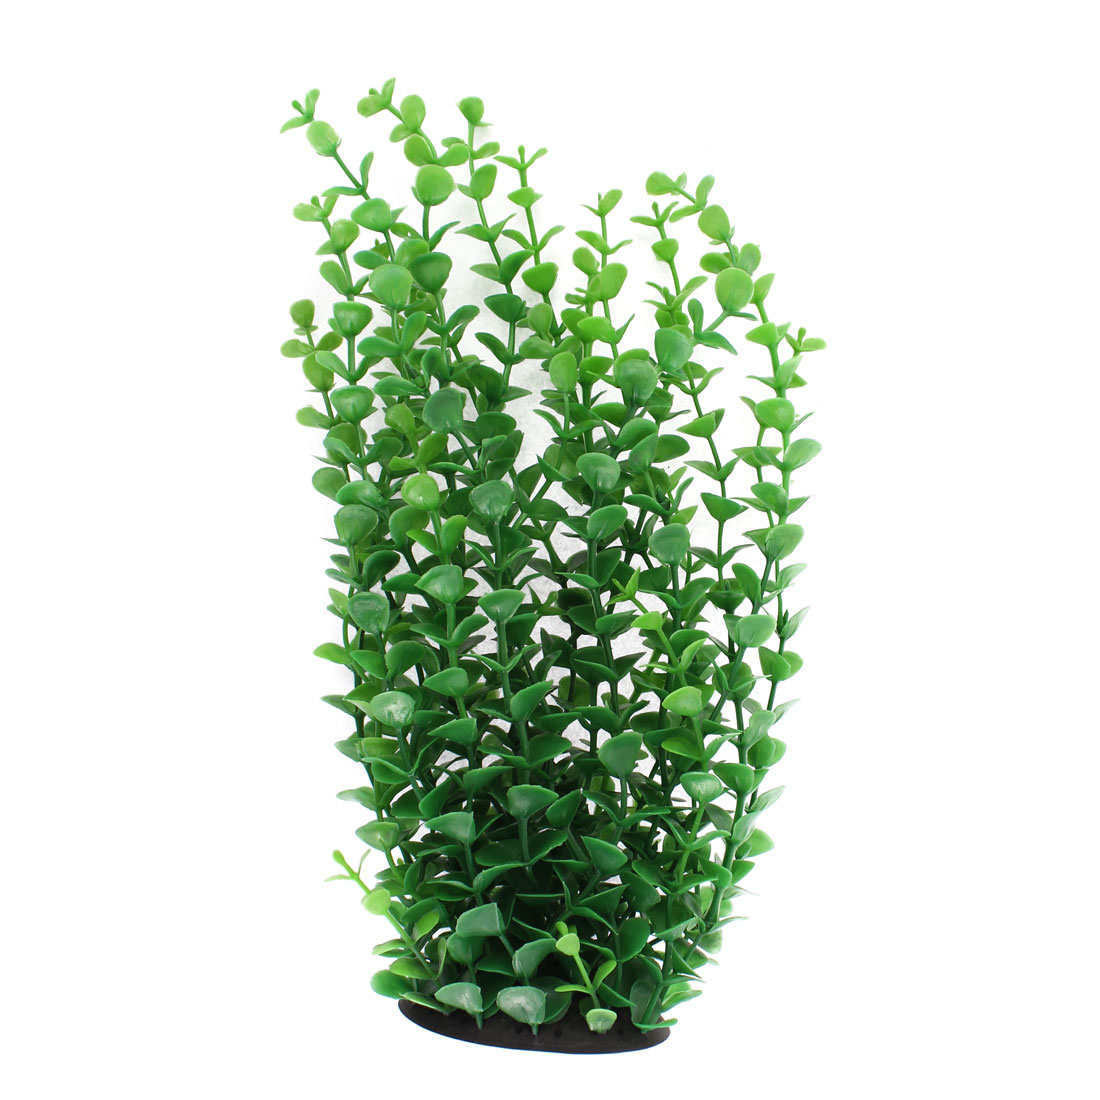 "Aquarium Plastic Artificial Plant Grass Decoration Green 10"" Height"